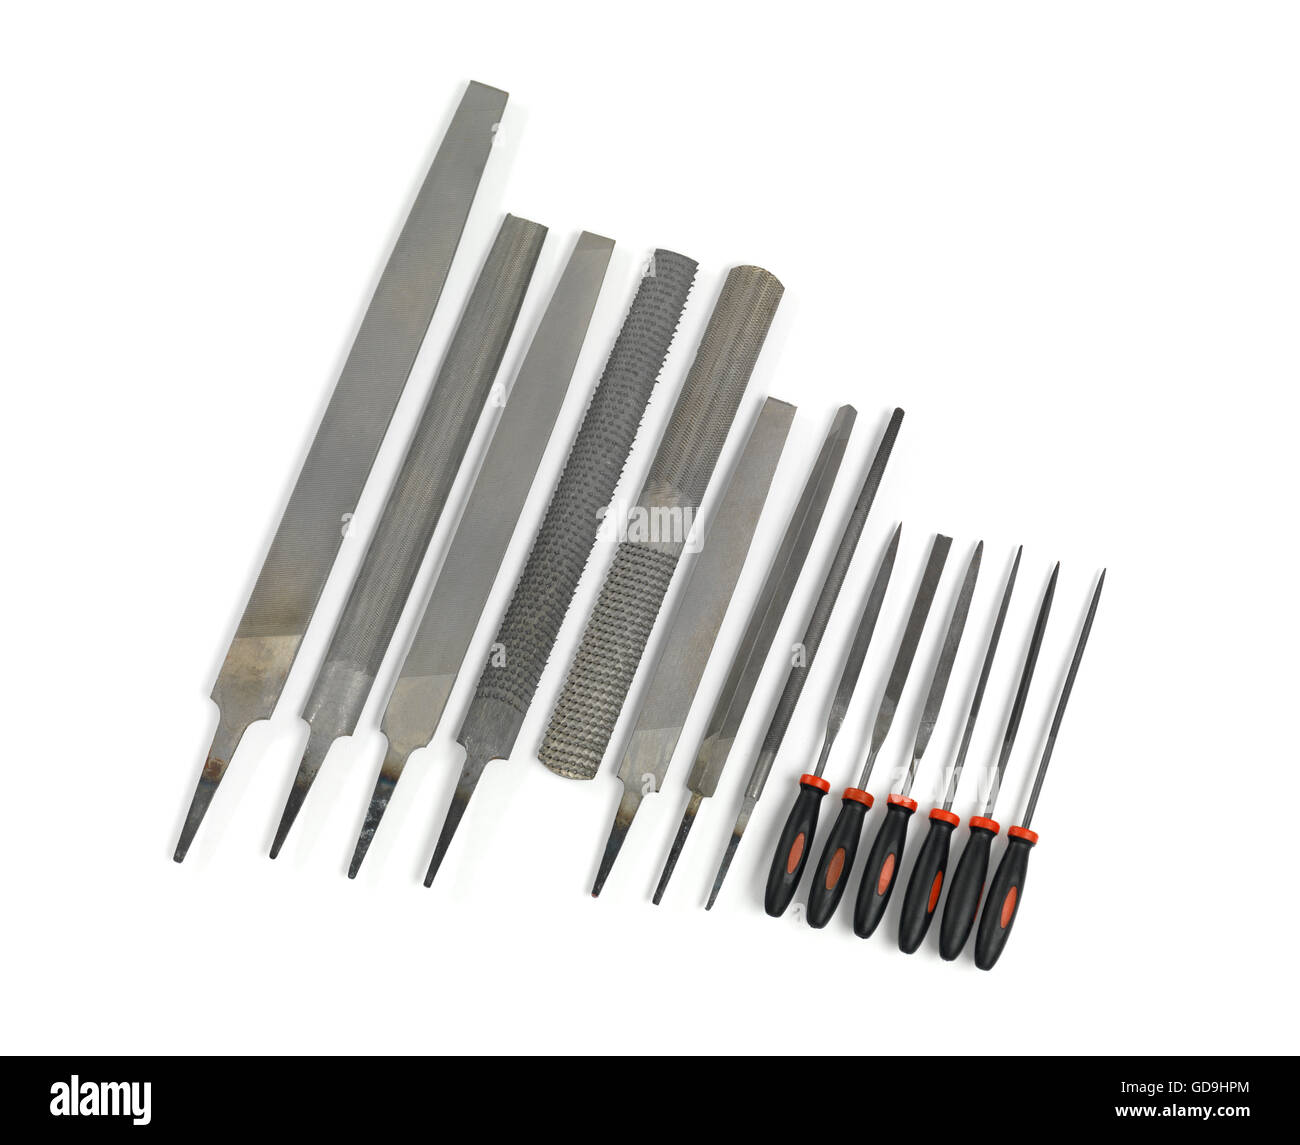 Set of hand files and needle files - Stock Image